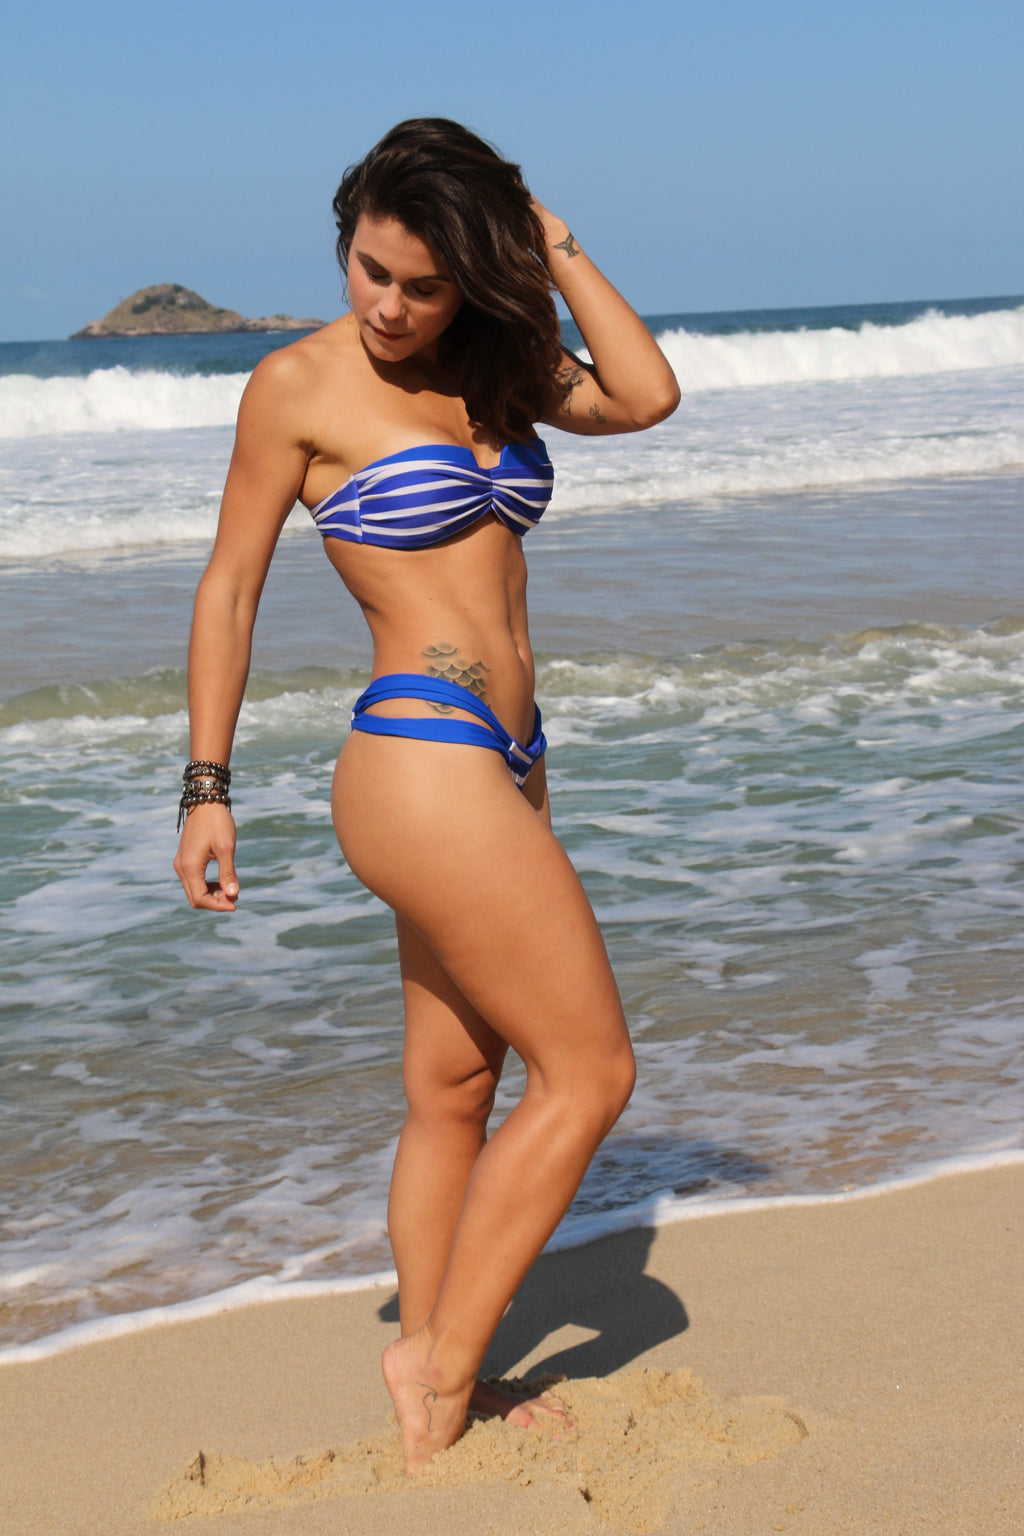 Hot blue Brazilian Bikini